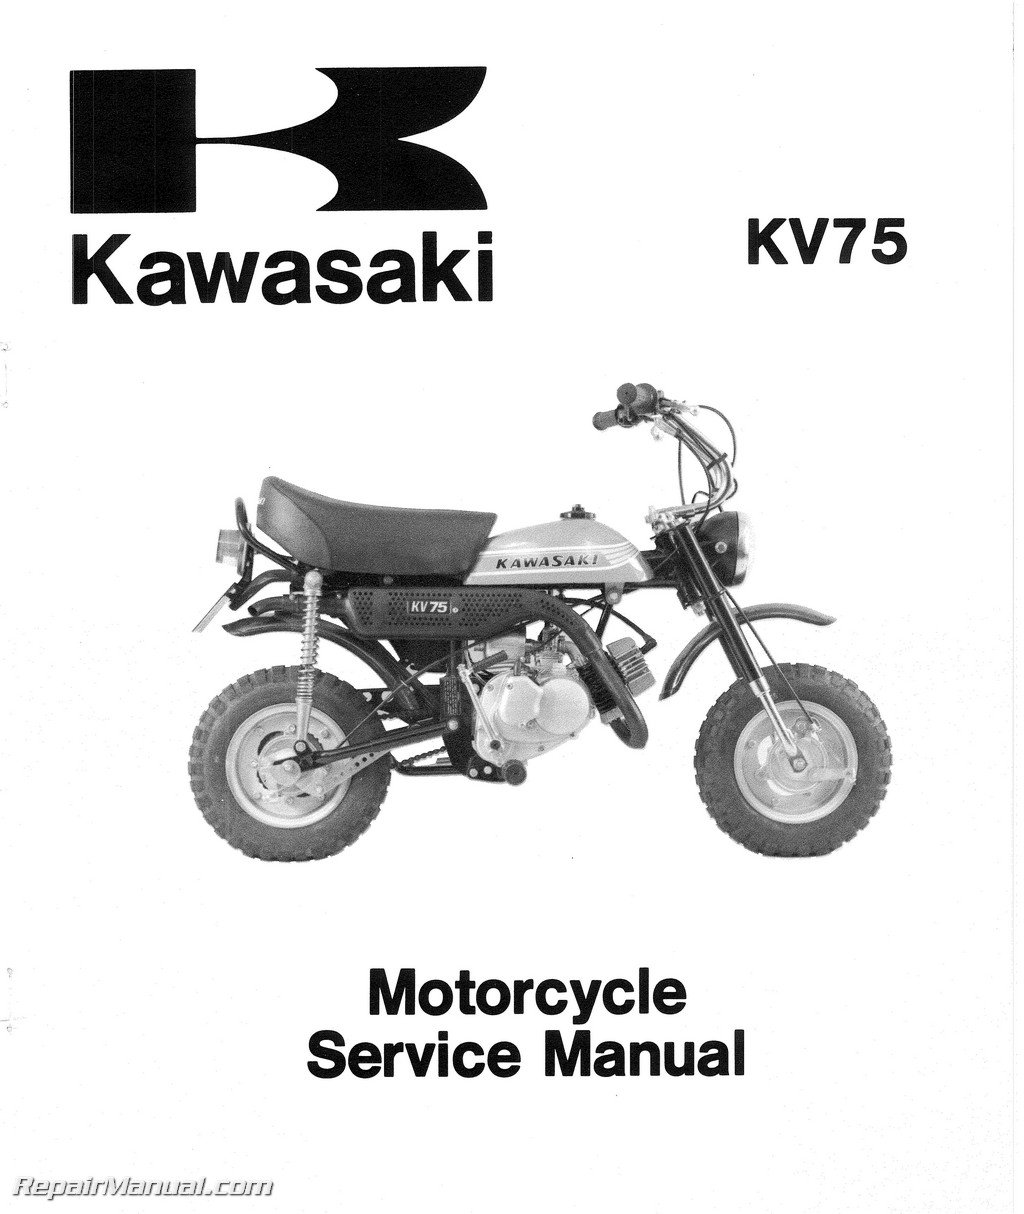 Kawasaki Kv75 Wiring Diagram - Wiring Diagrams Schematics